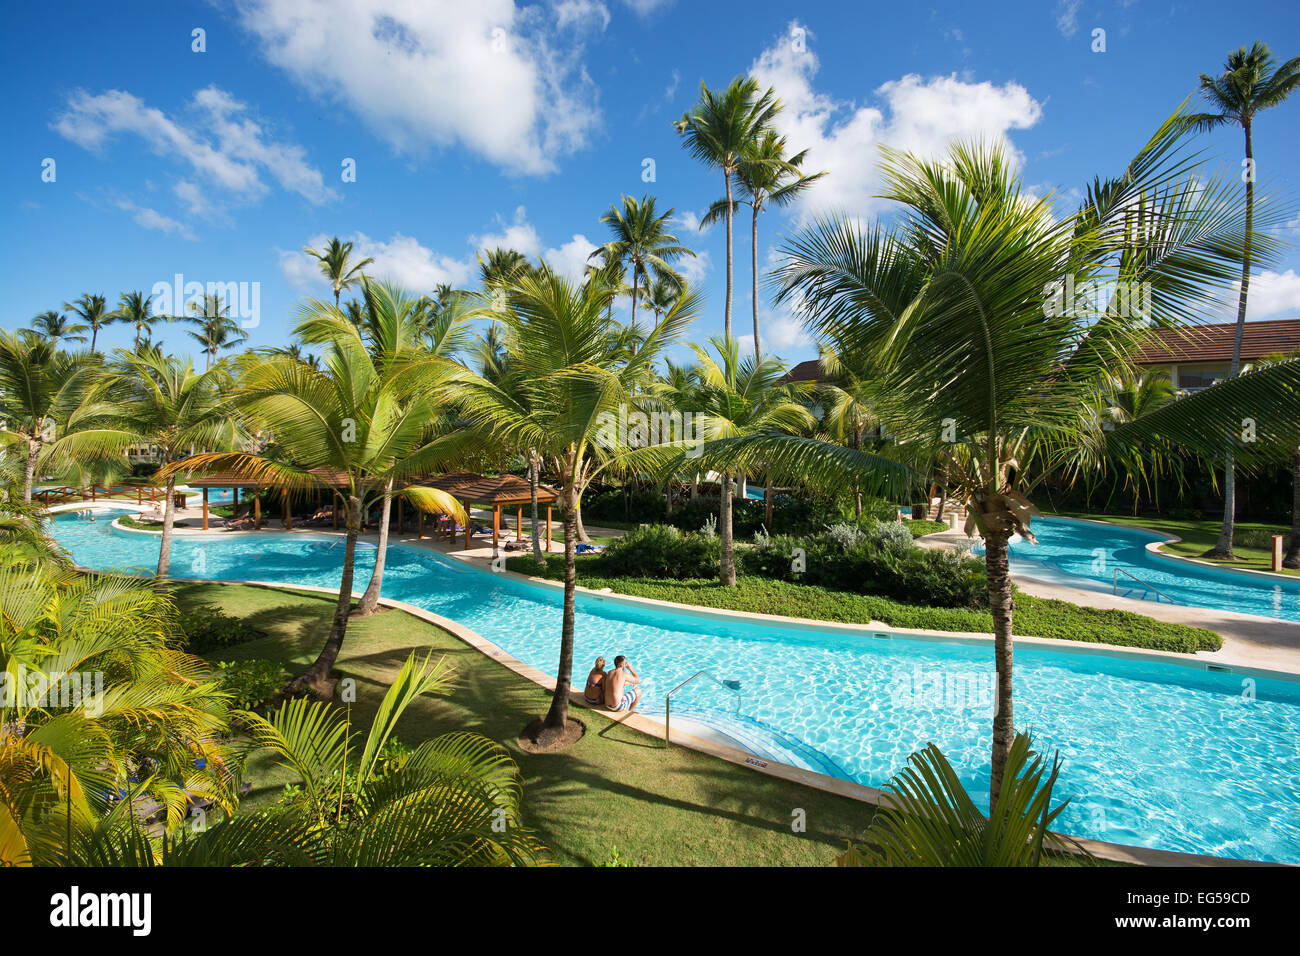 DOMINICAN REPUBLIC. A river-style swimming pool in the ...